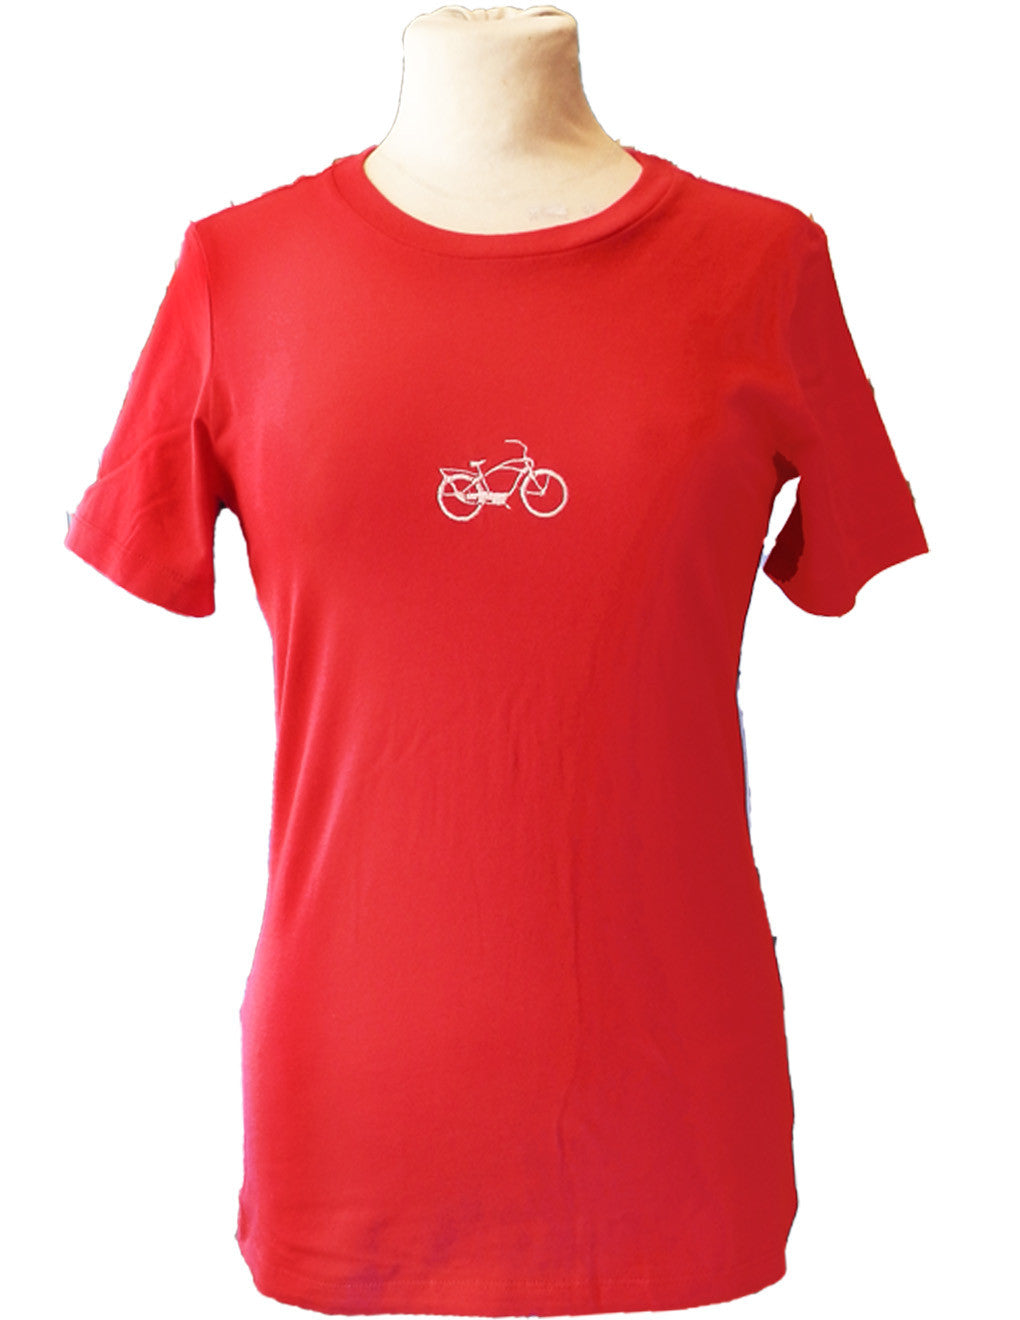 Upside Cyclestyle Women's Embroidered T-Shirt with Cruiser Bicycle in Red - front view